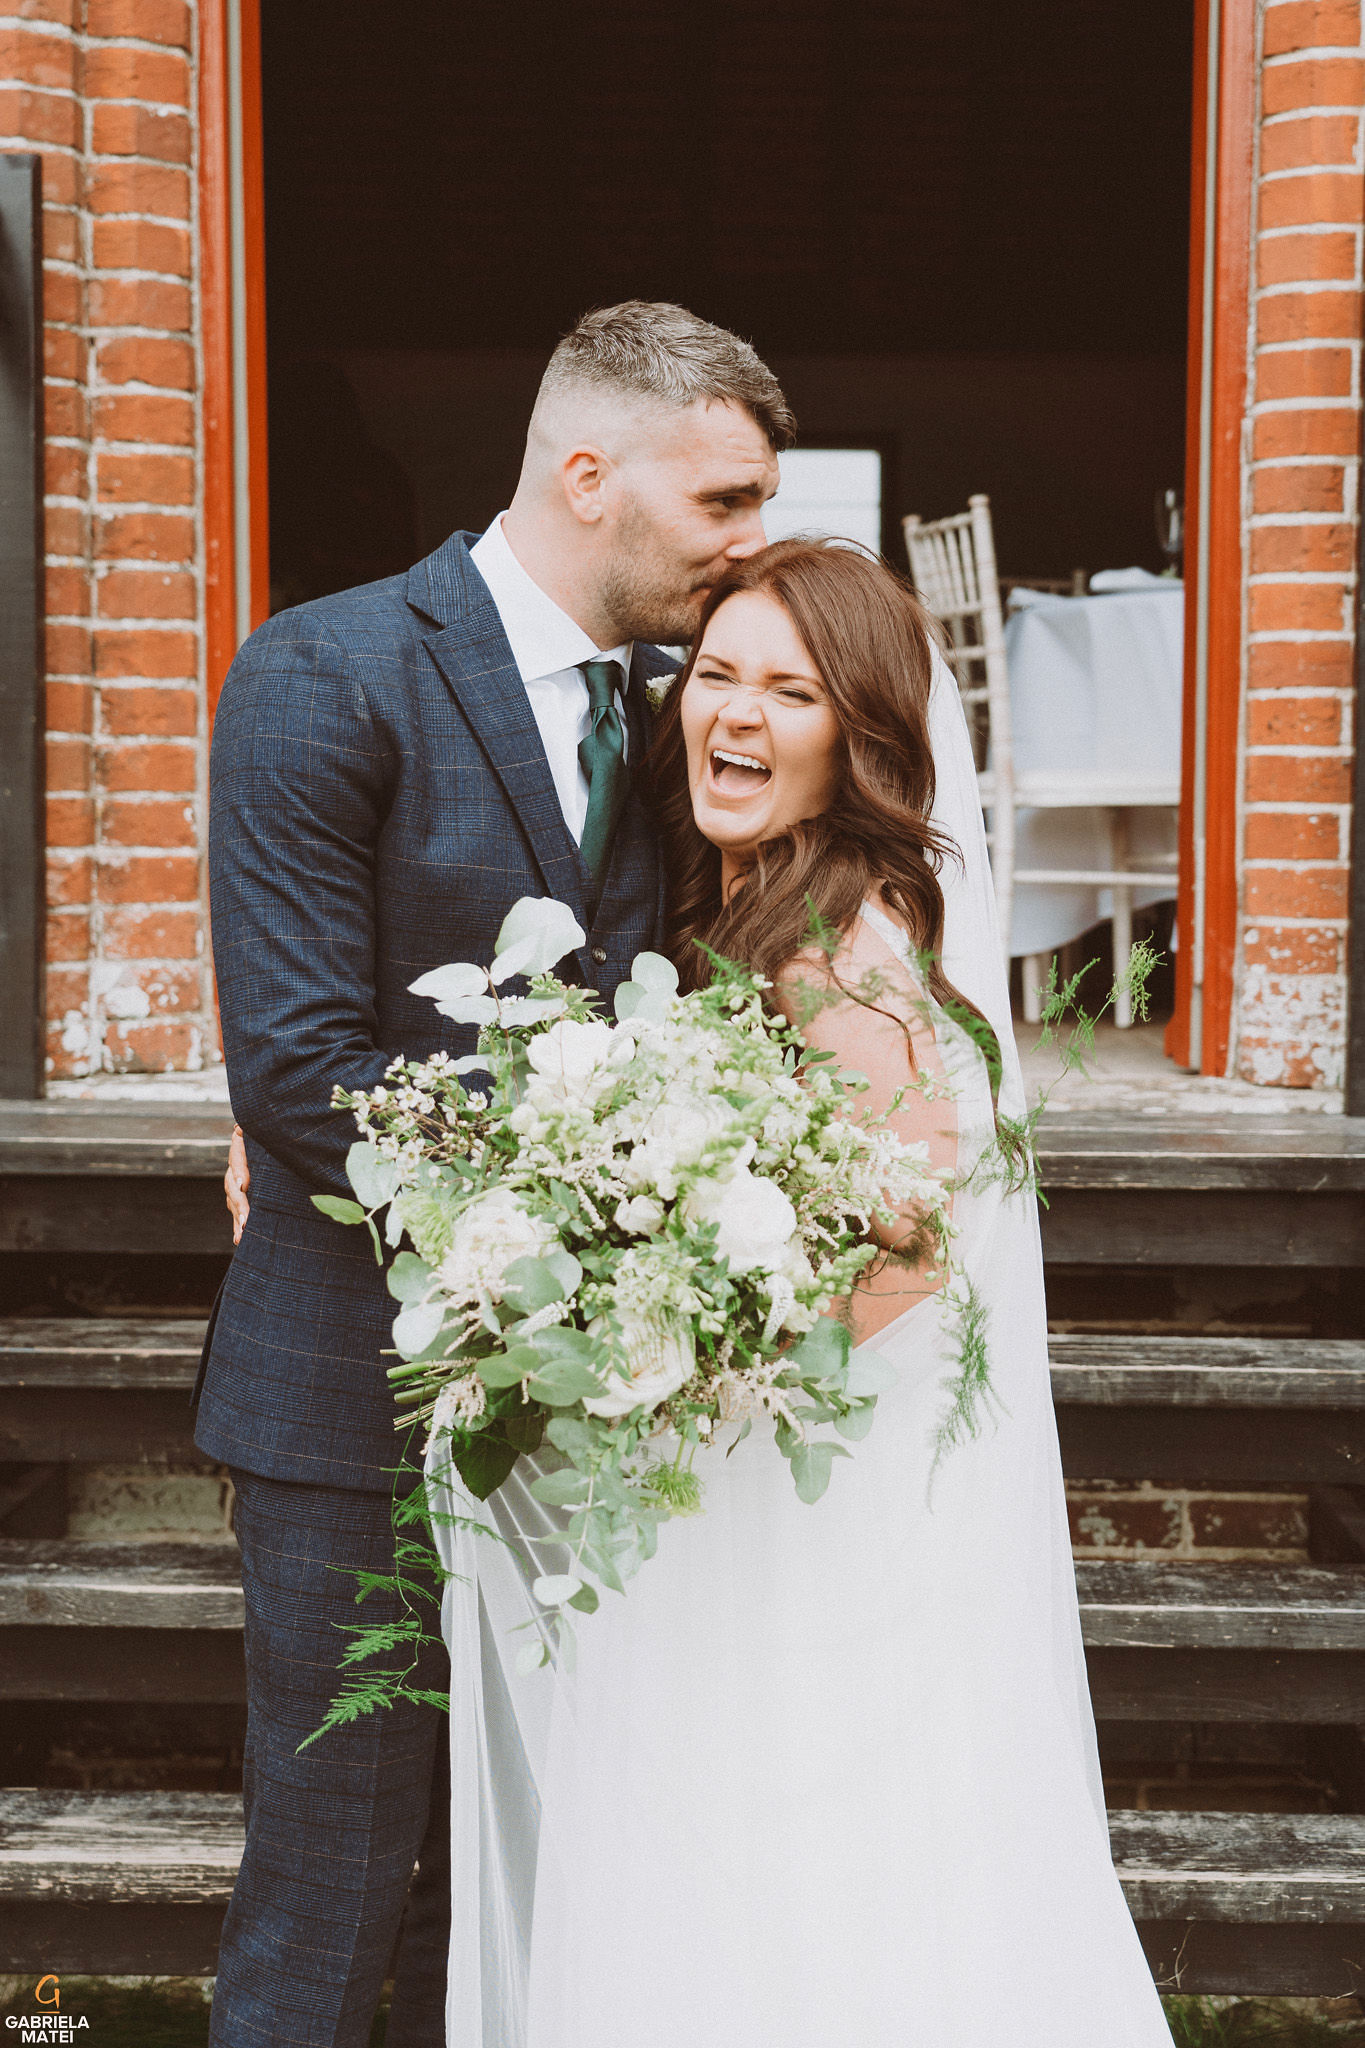 Wedding couple laughing at South Stoke Barn wedding venue in Arundel by gabriela matei sussex photographer